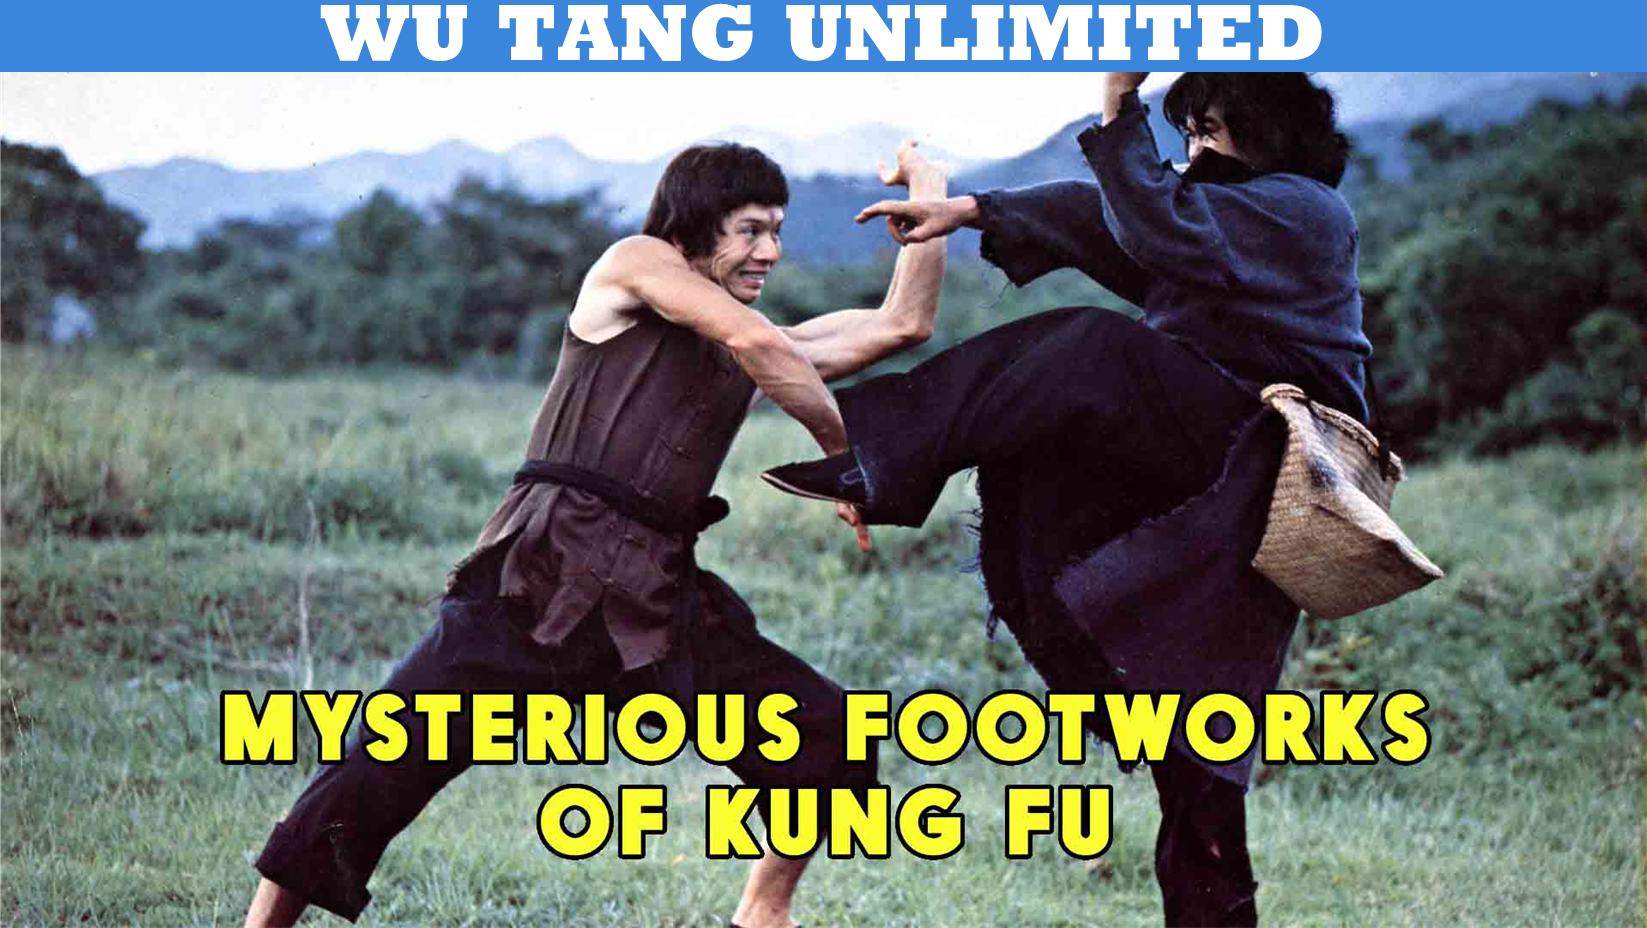 Mysterious Footworks of Kung Fu